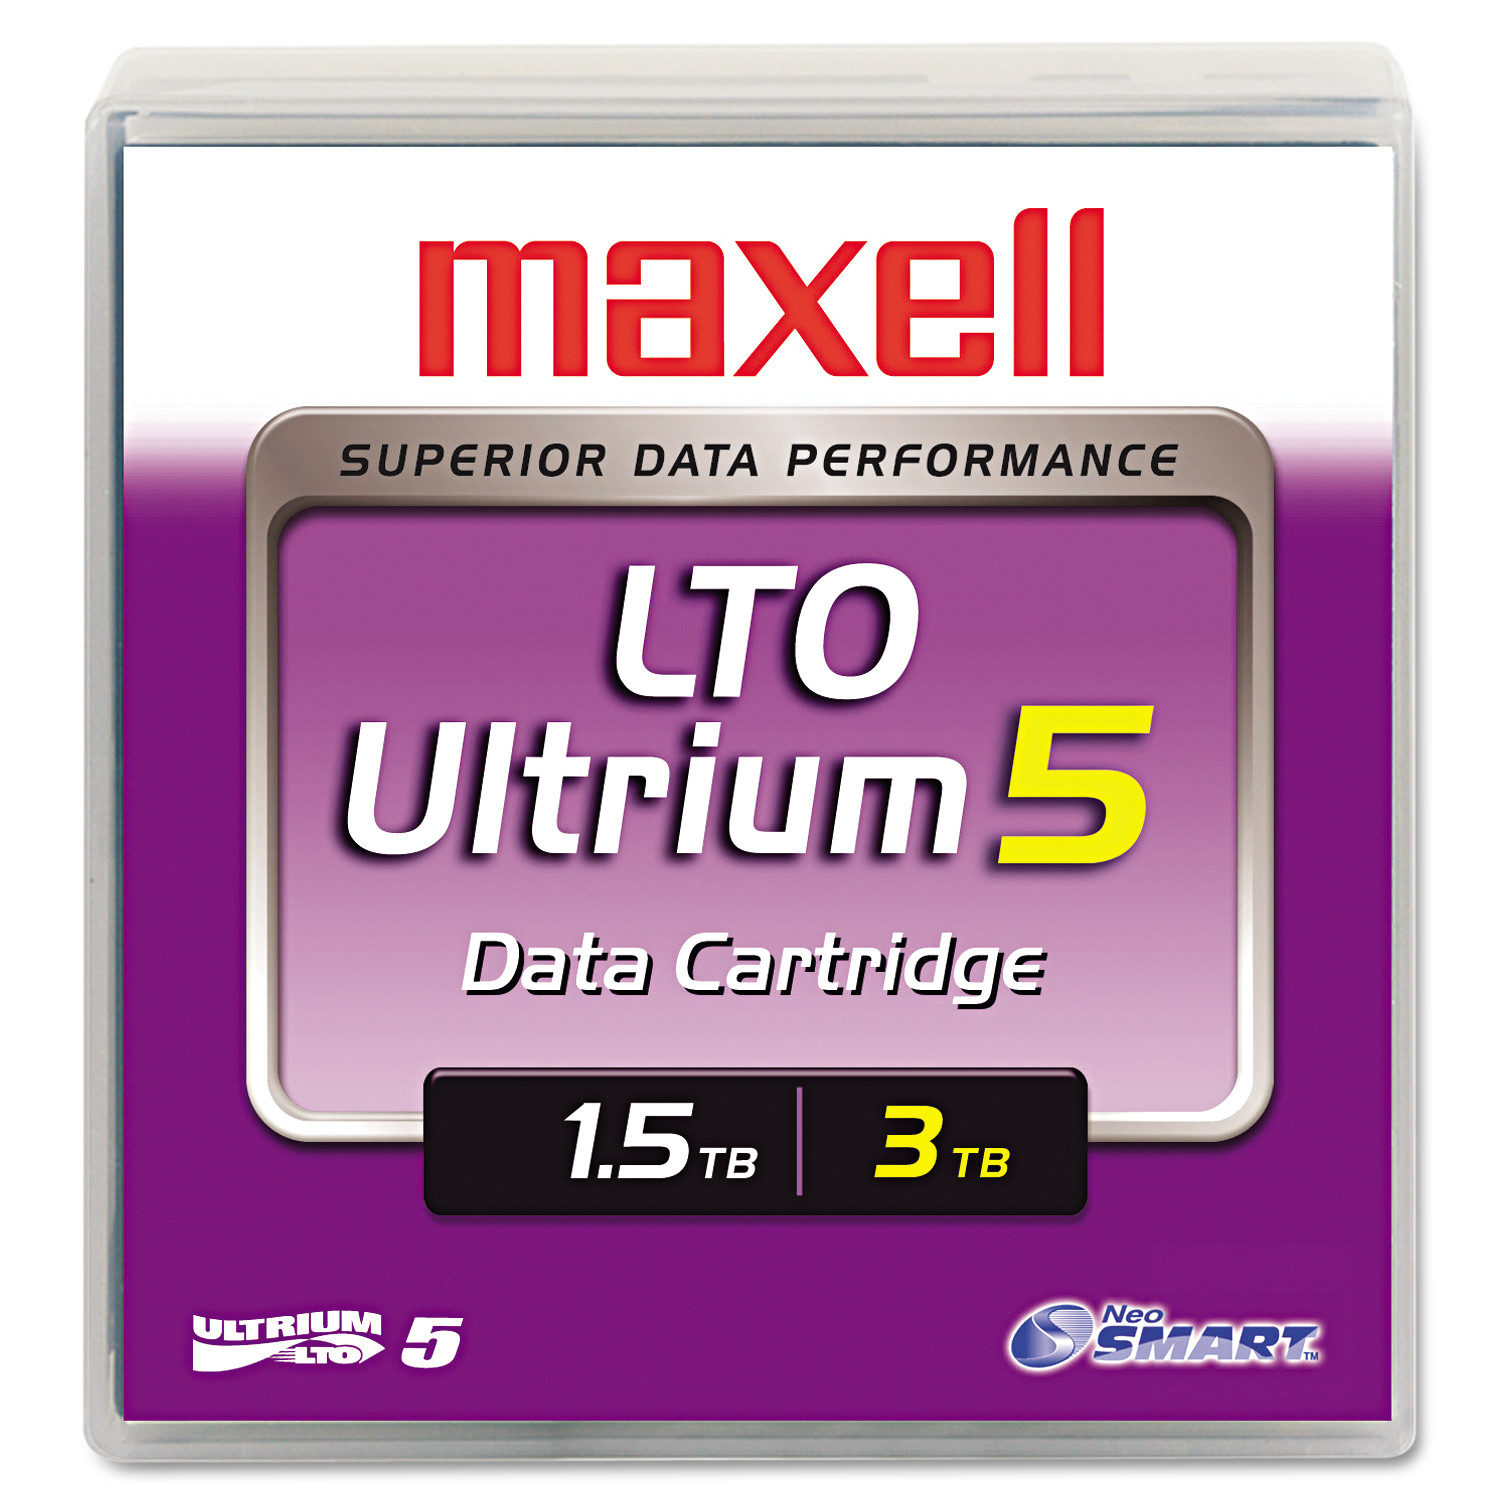 "Maxell 1/2"" Ultrium LTO-5 Cartridge, 2,776ft, 1.5TB Native/3.0TB Compressed Capacity"